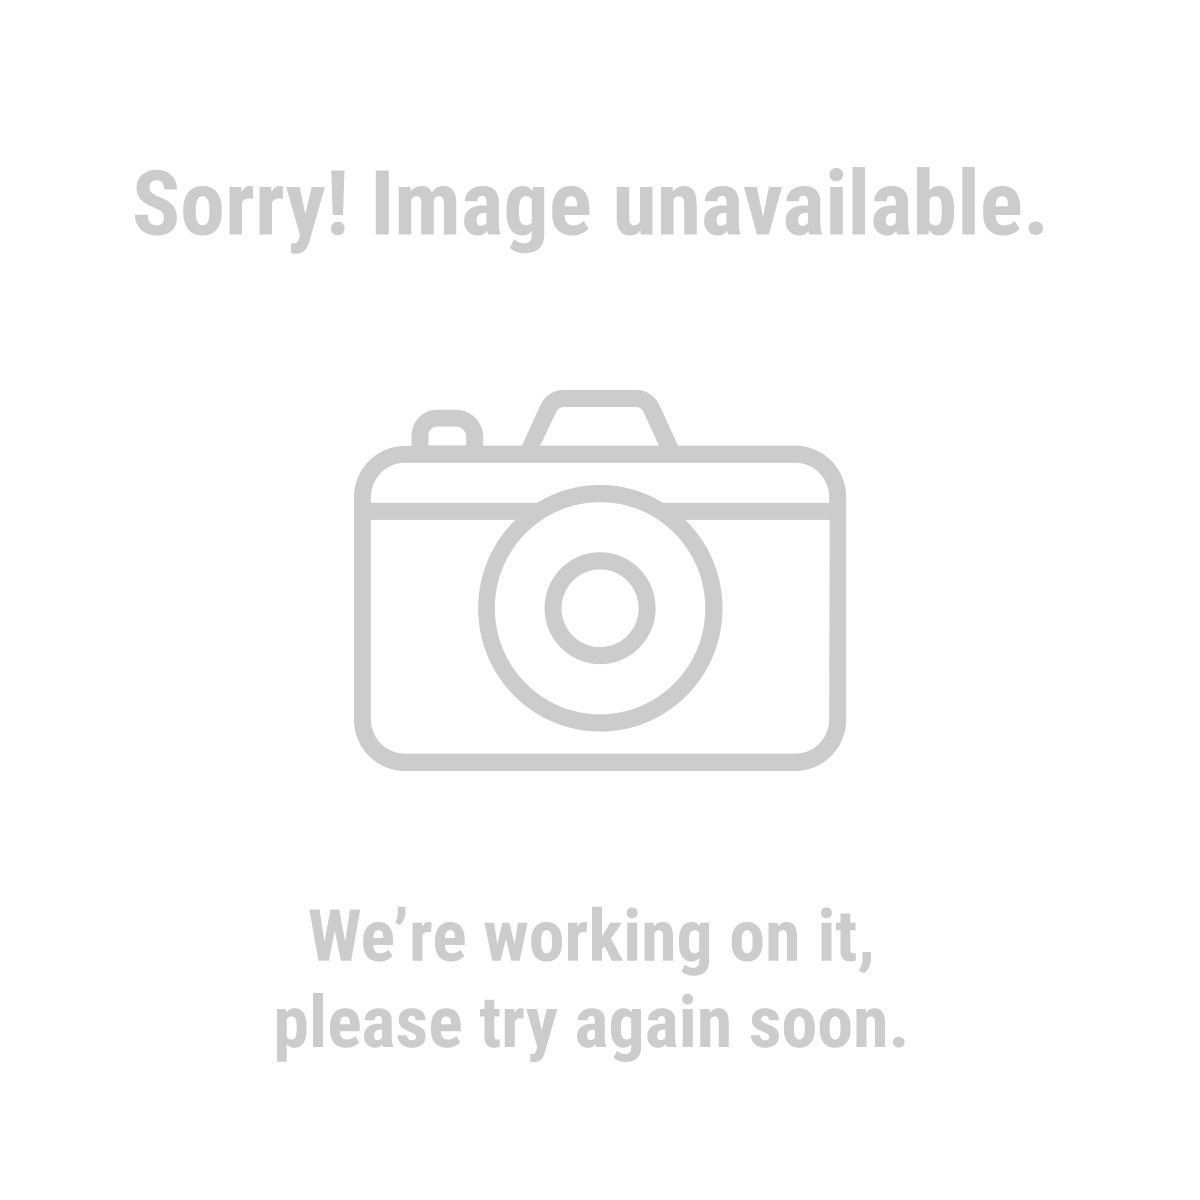 Pittsburgh Automotive 62768 880 lb. Electric Hoist with Remote Control